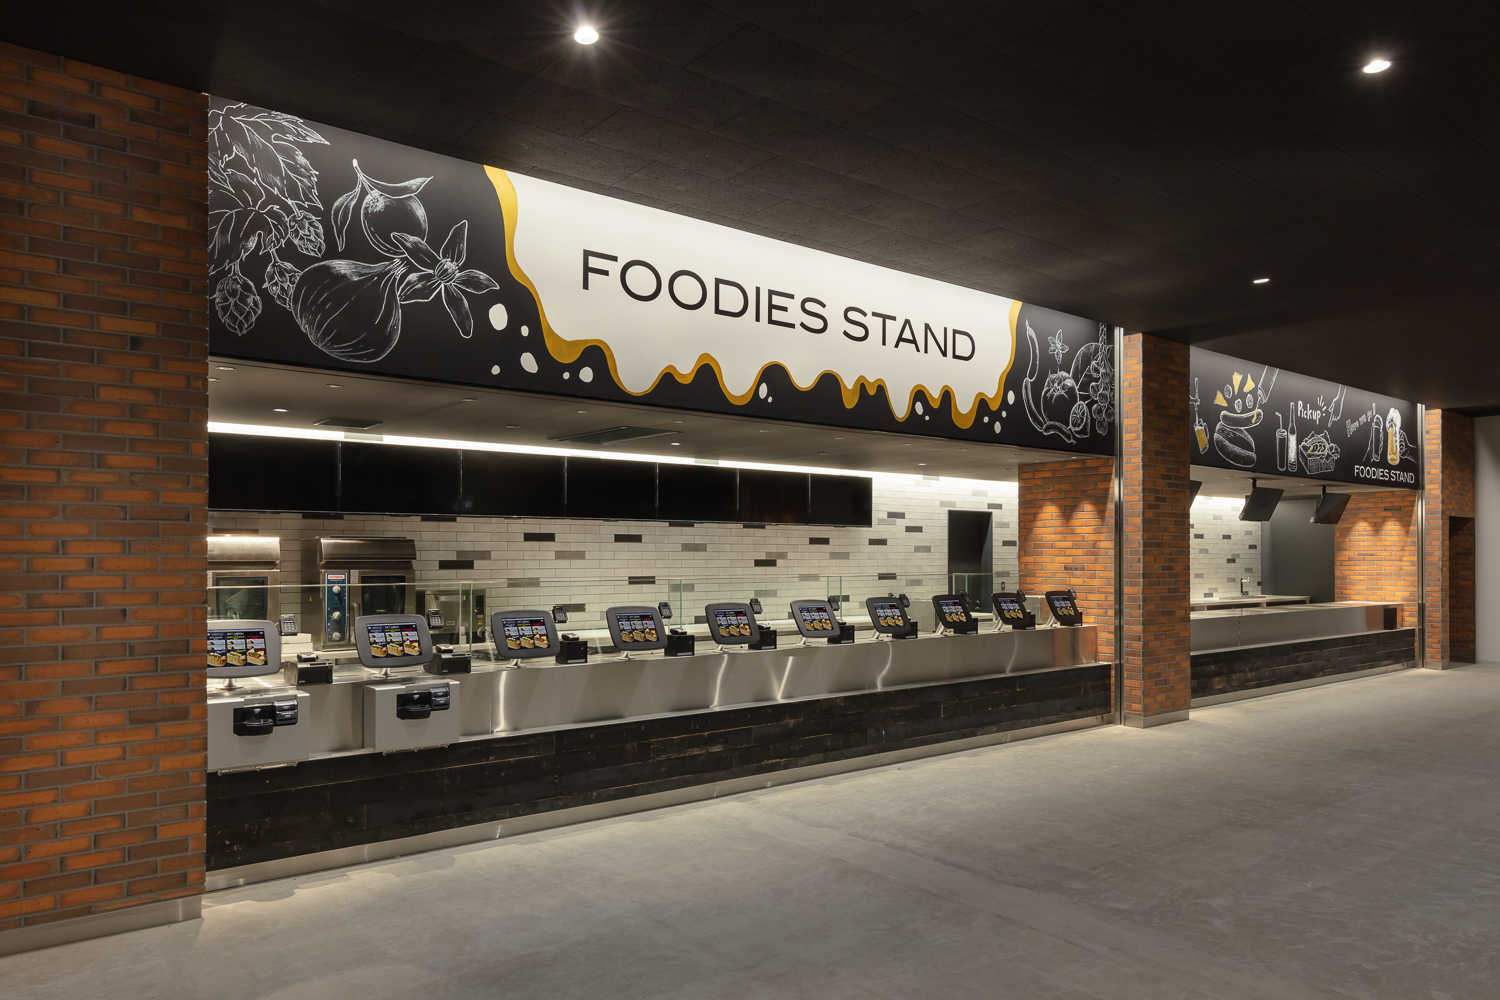 FOODIES STAND